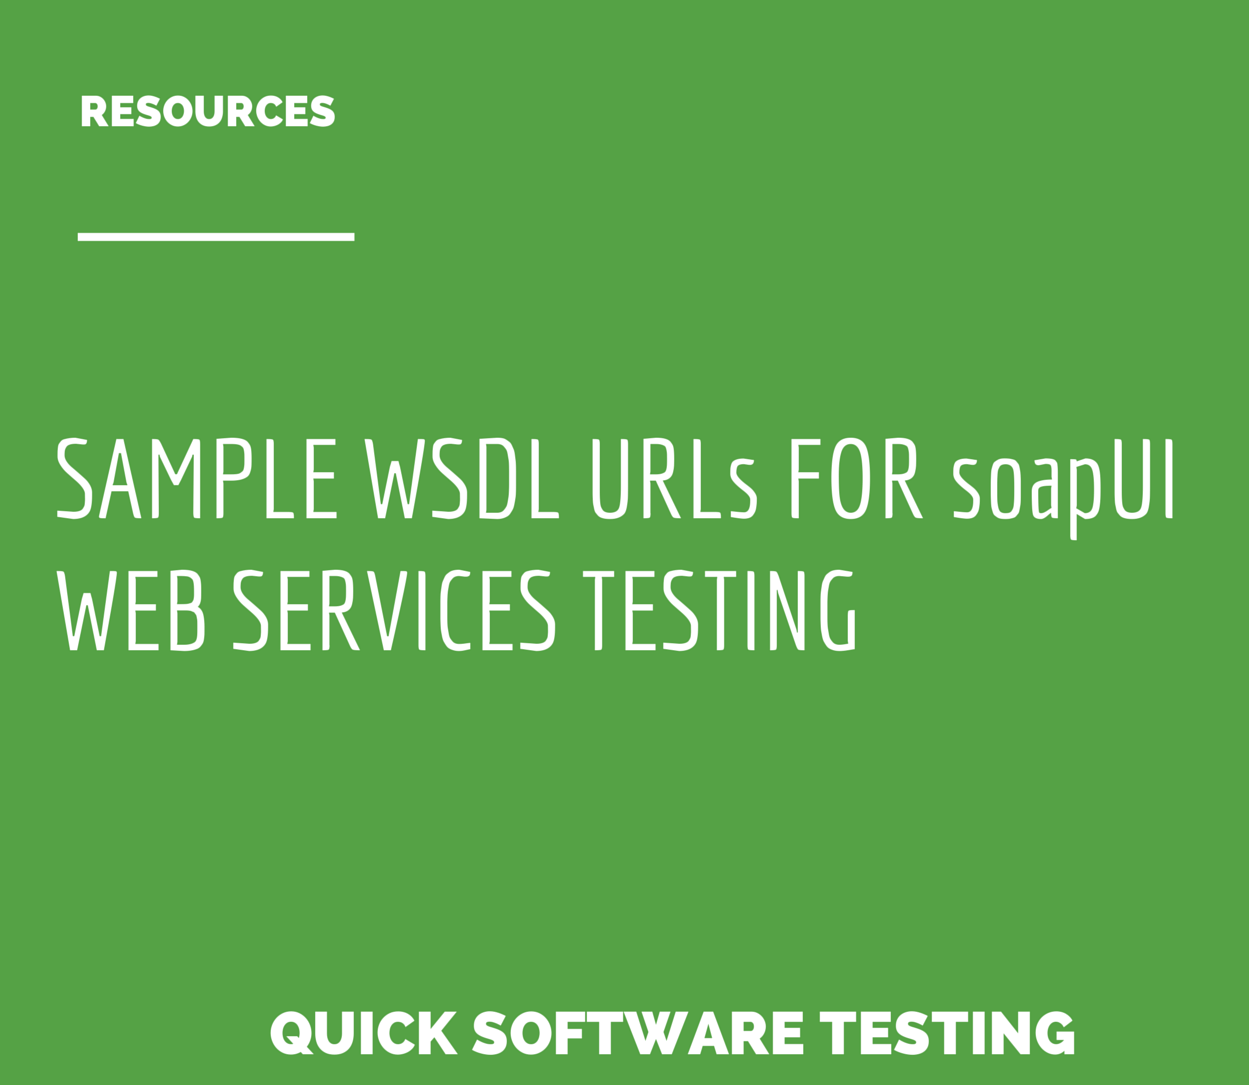 Sample WSDL URLs for soapUI Web Services Testing